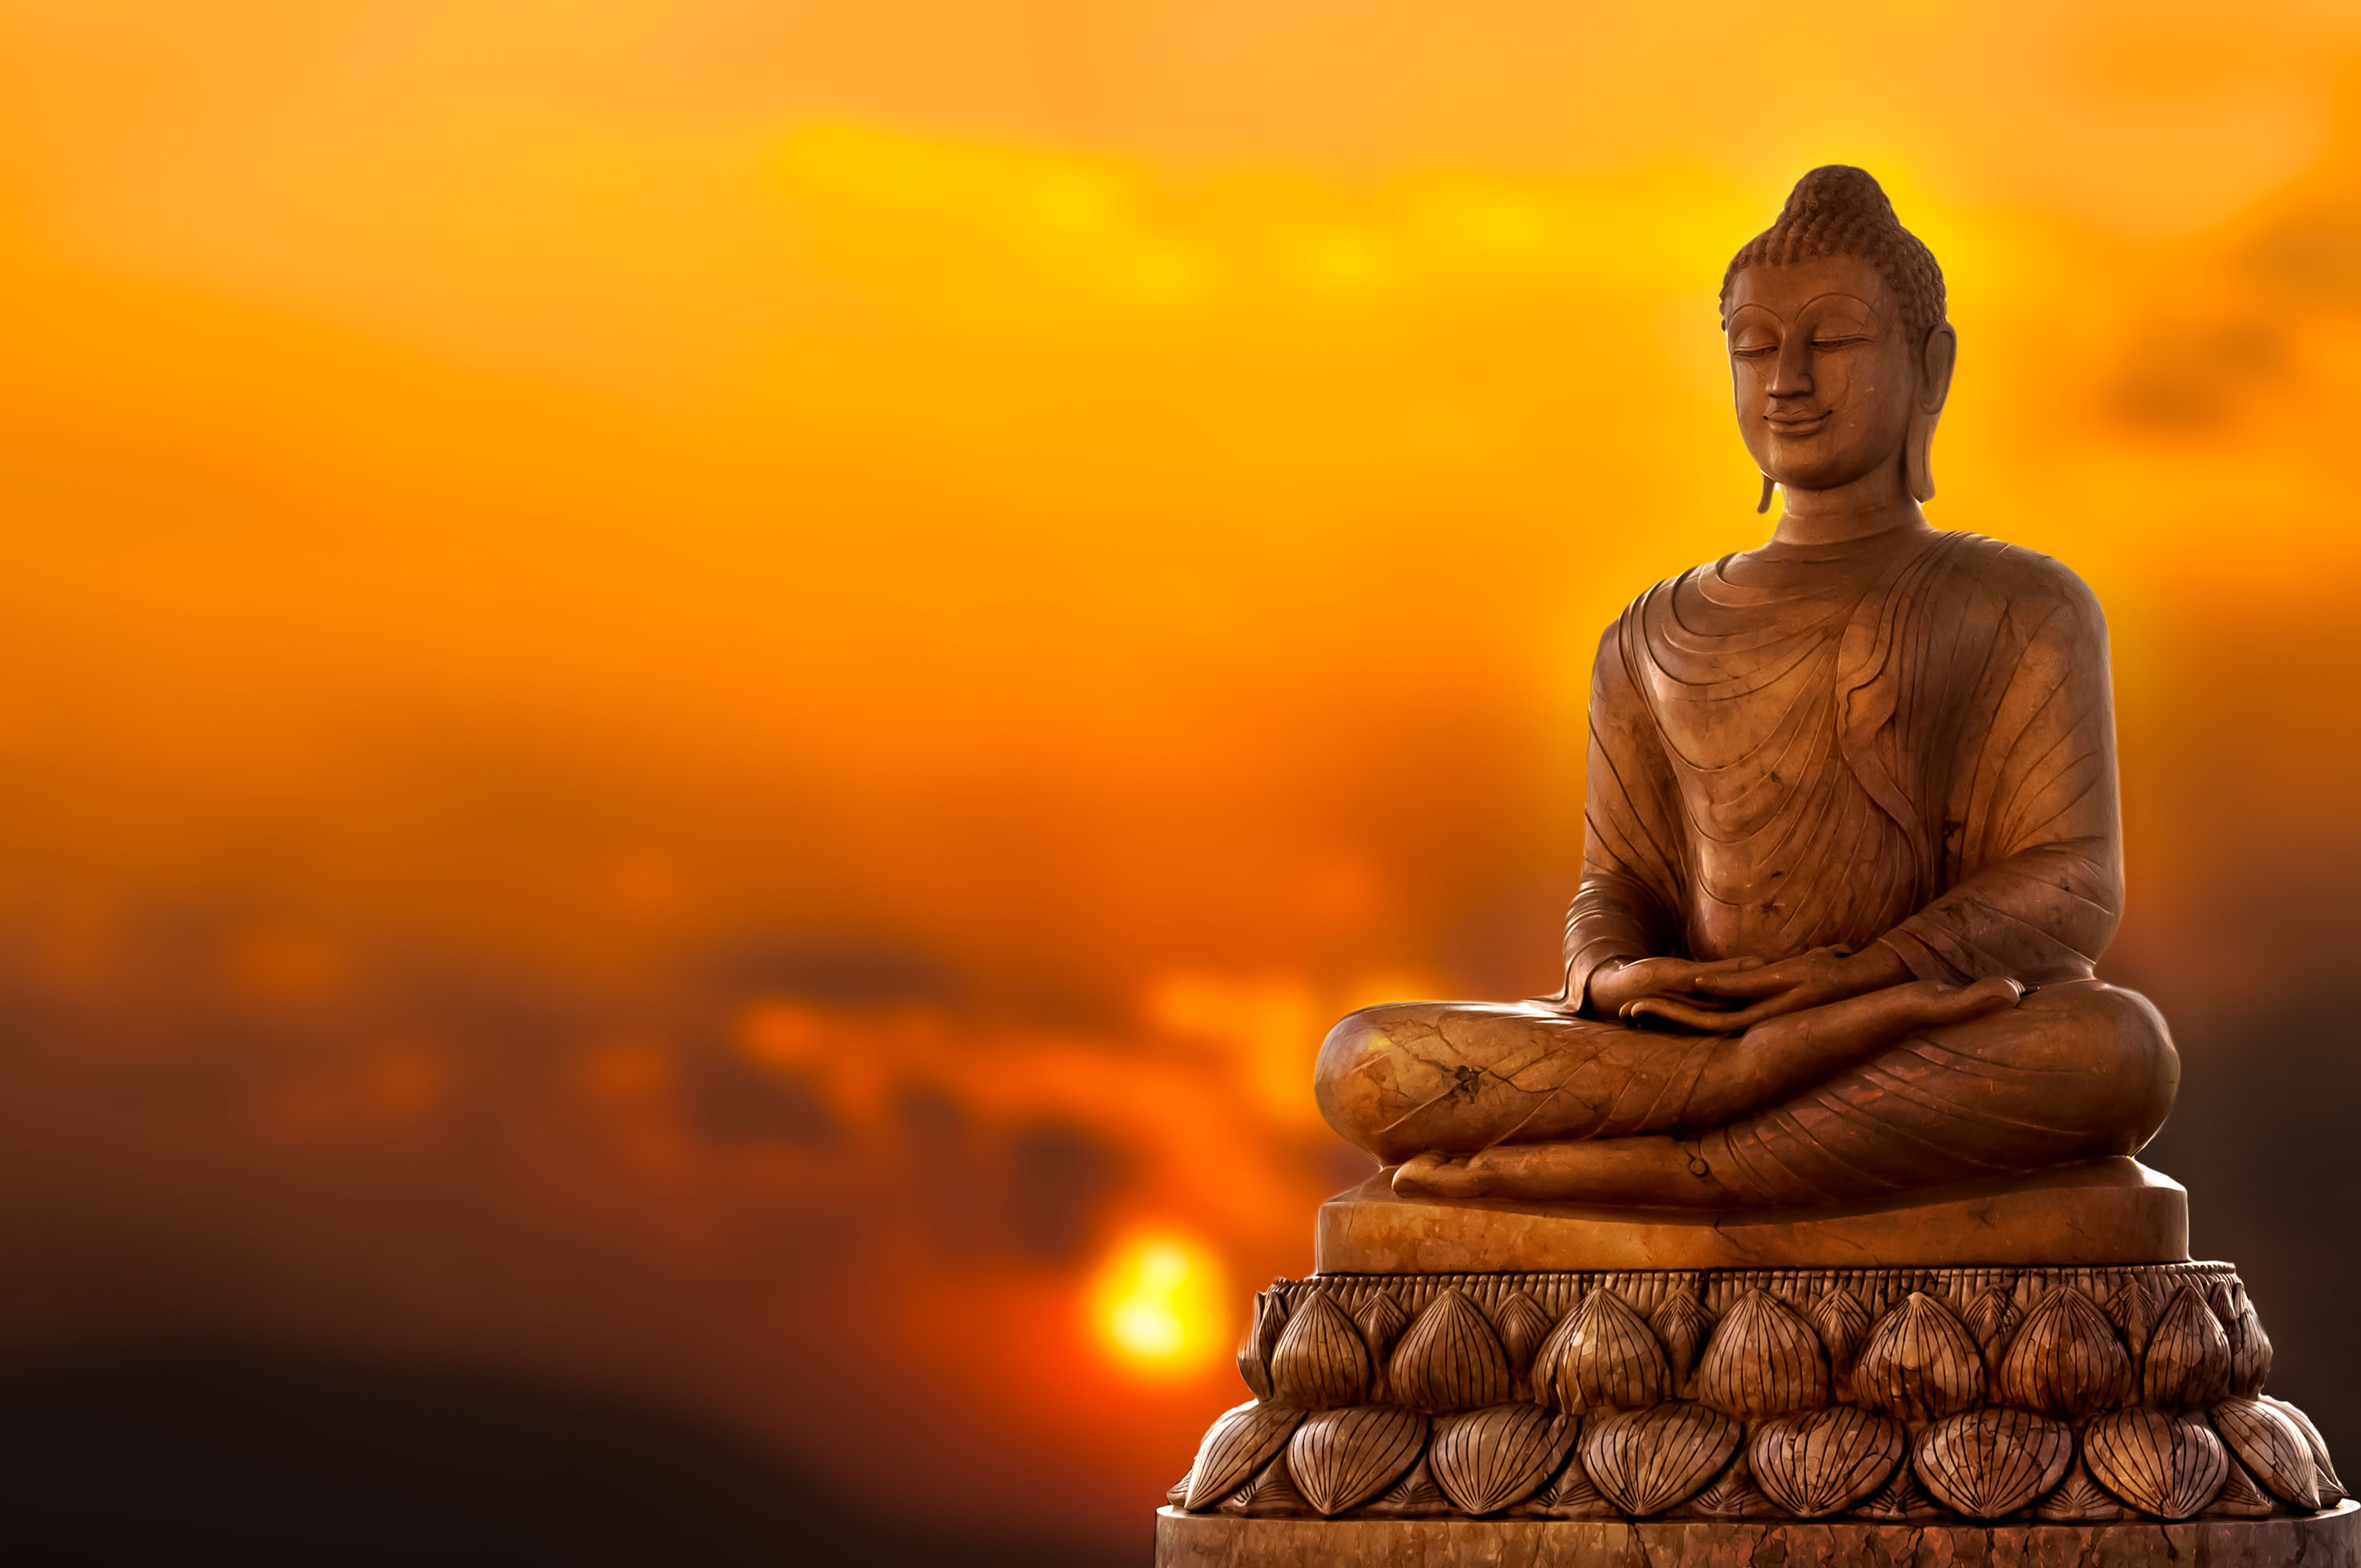 earling buddhist personals Find buddhist personals listings in tampa on oodle classifieds join millions of people using oodle to find great personal ads don't miss what's happening in your neighborhood.